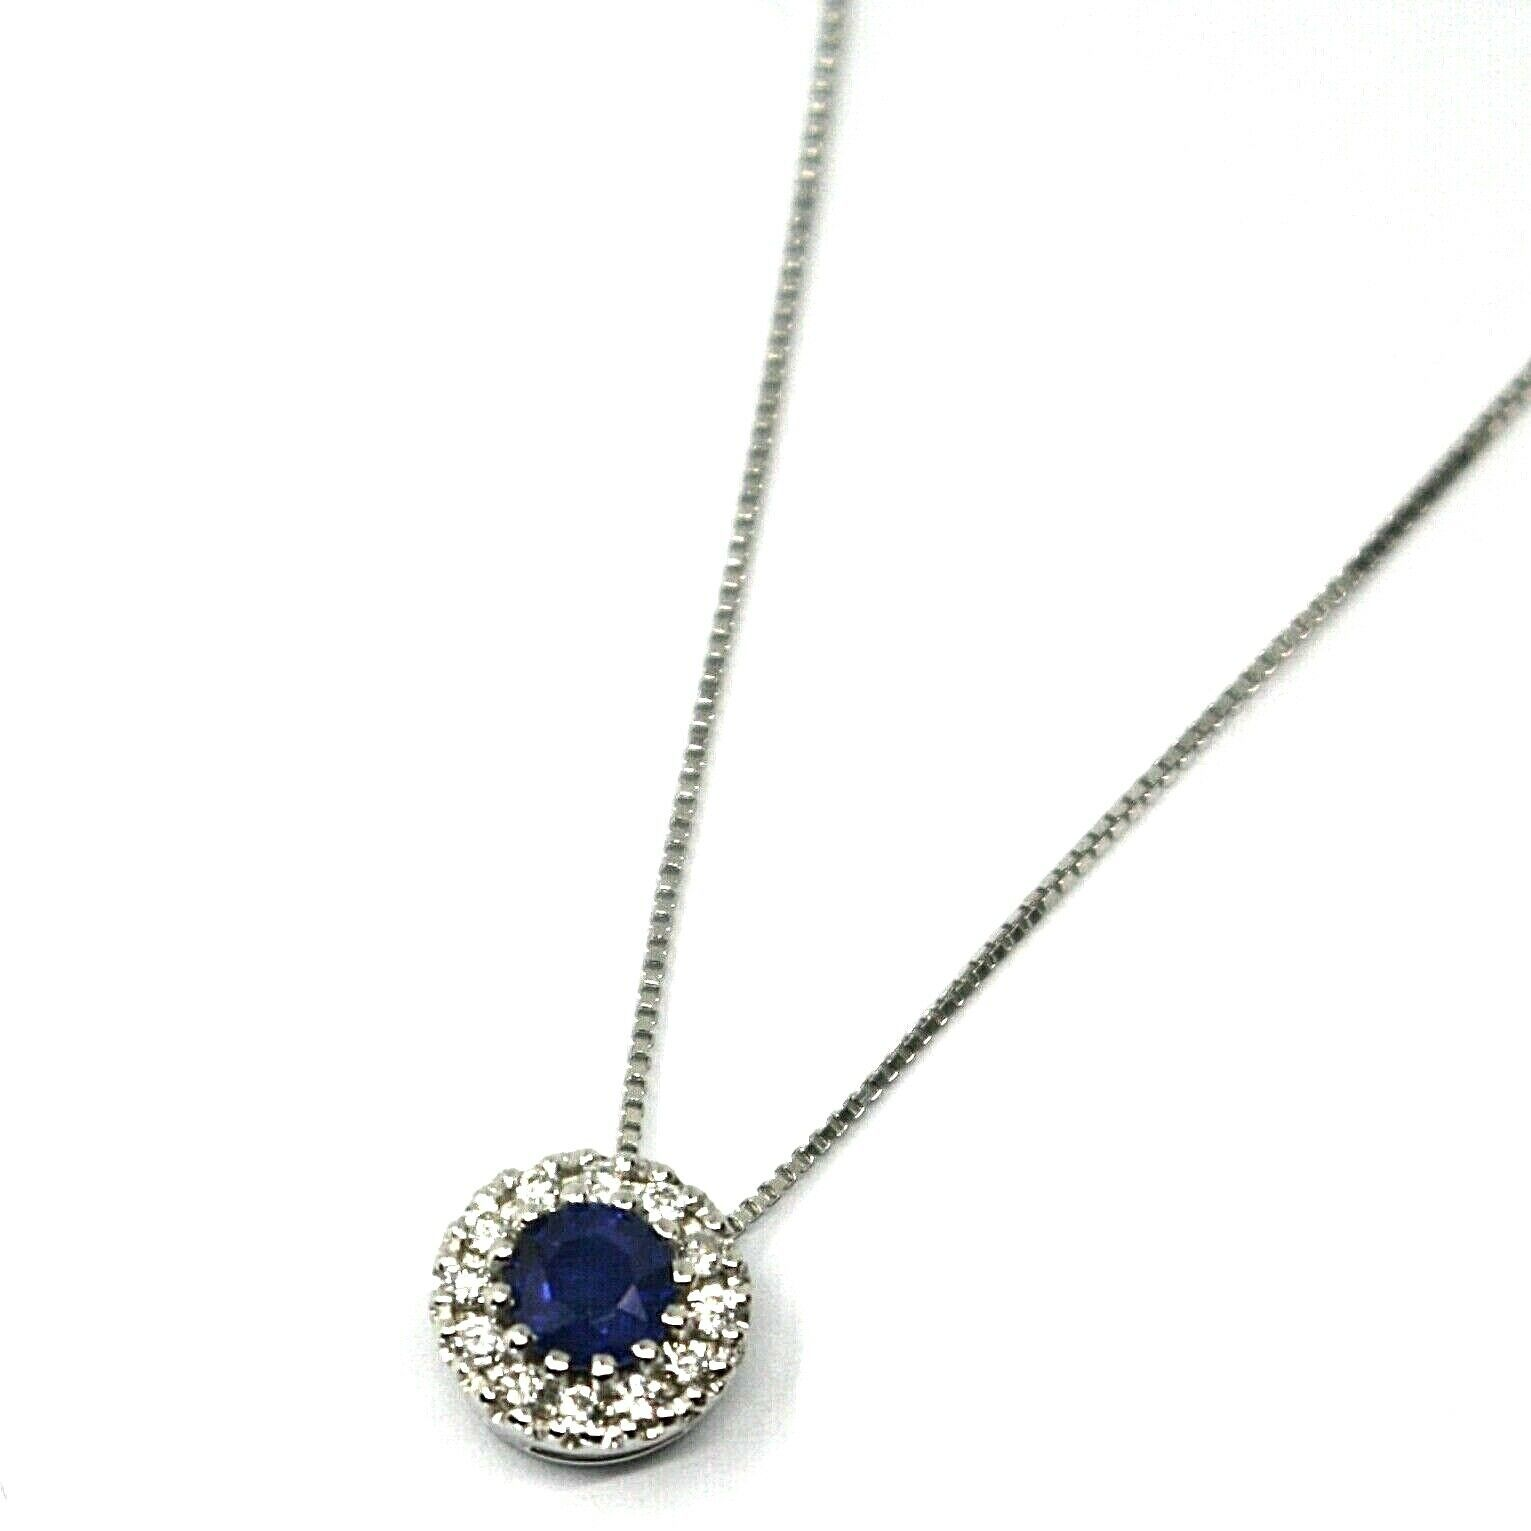 18K WHITE GOLD NECKLACE, FLOWER PENDANT, ROUND SAPPHIRE WITH DIAMONDS FRAME